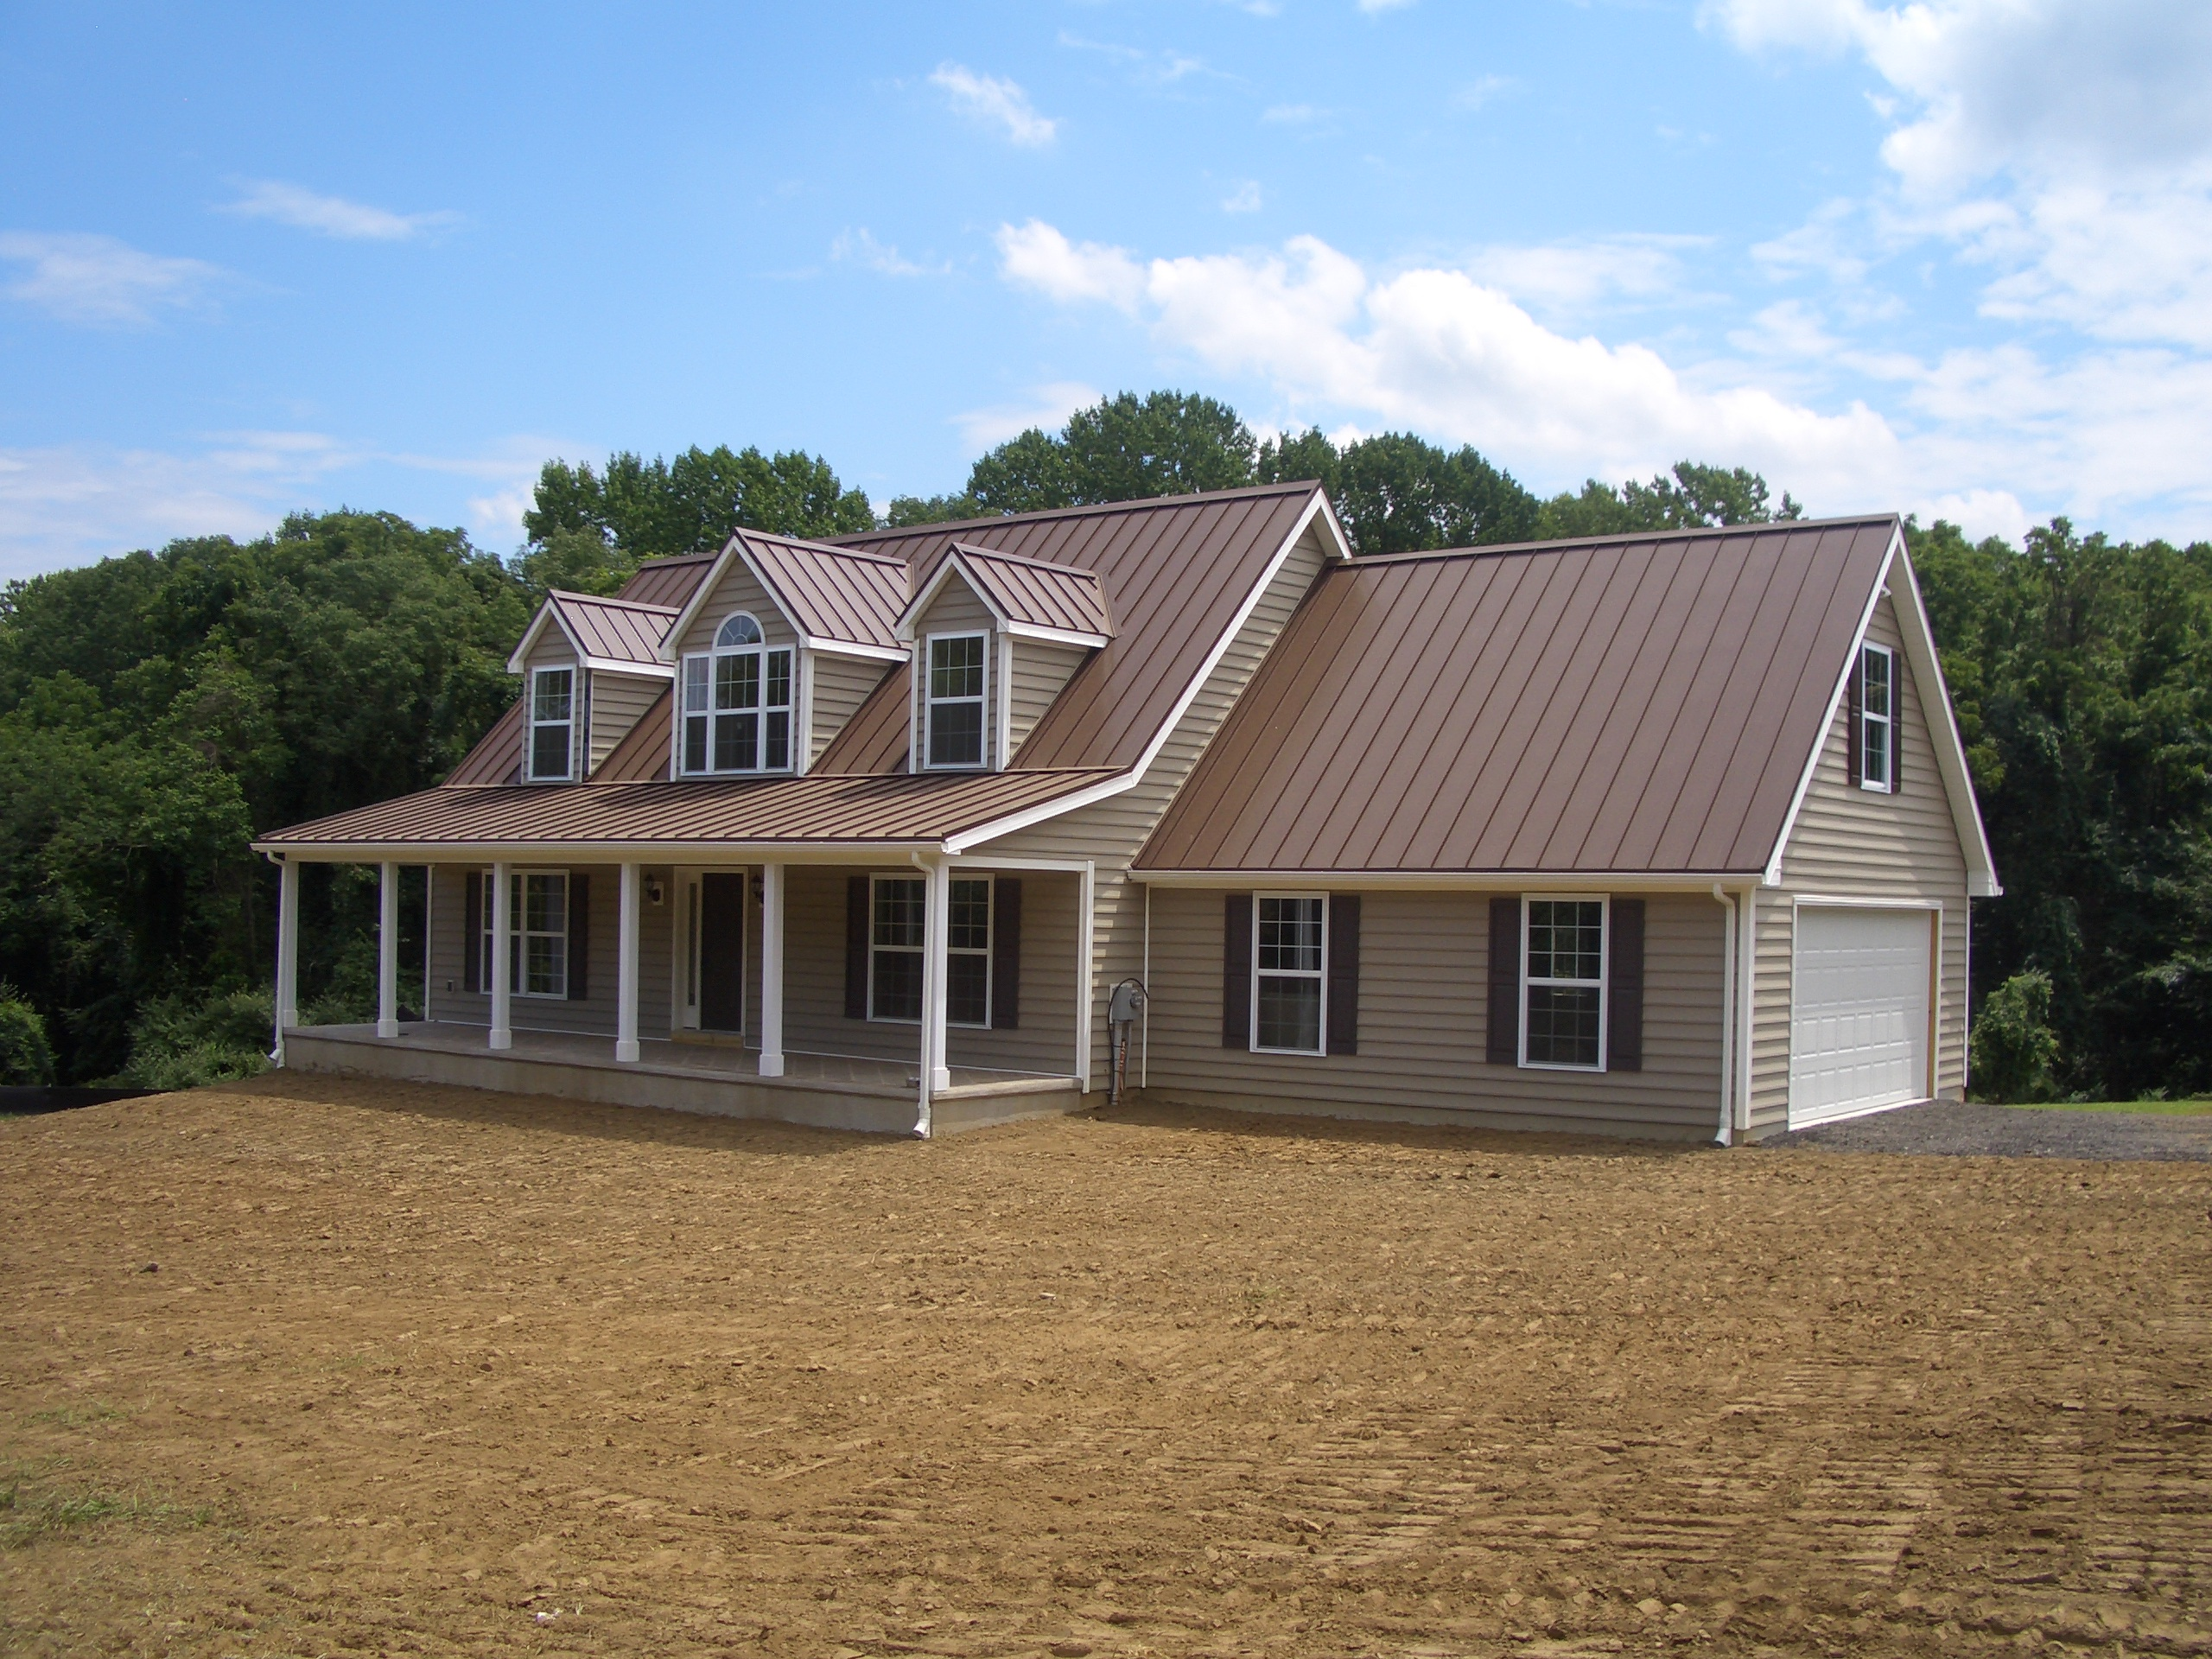 Ecodesigncenter certified green in chadds ford pa for Manufactured home plans with garage